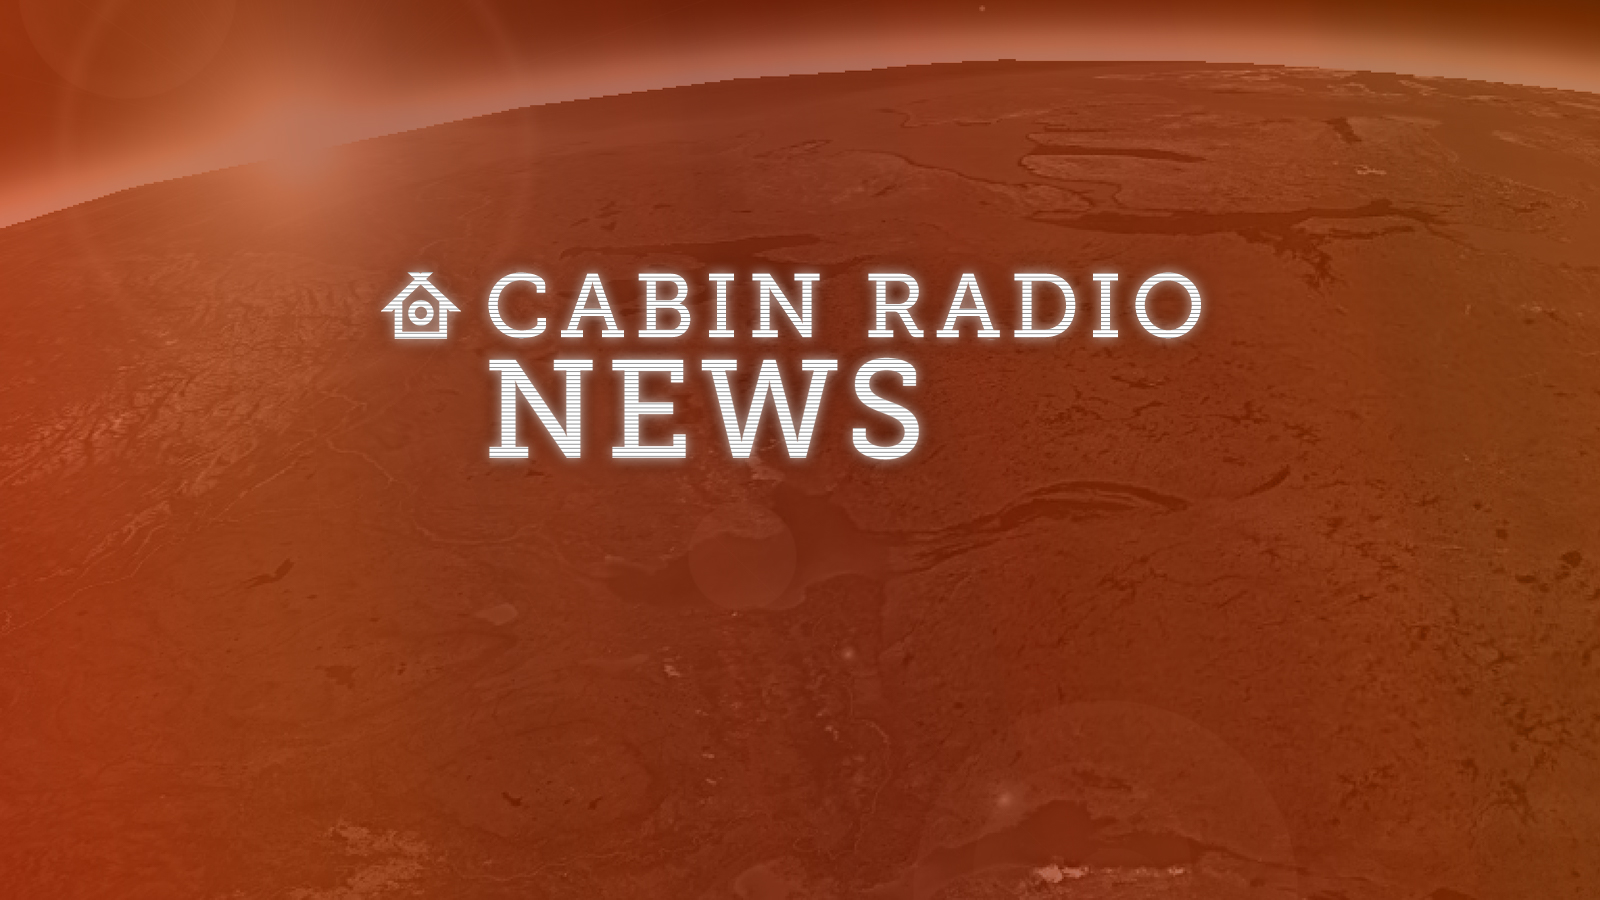 Cabin Radio News